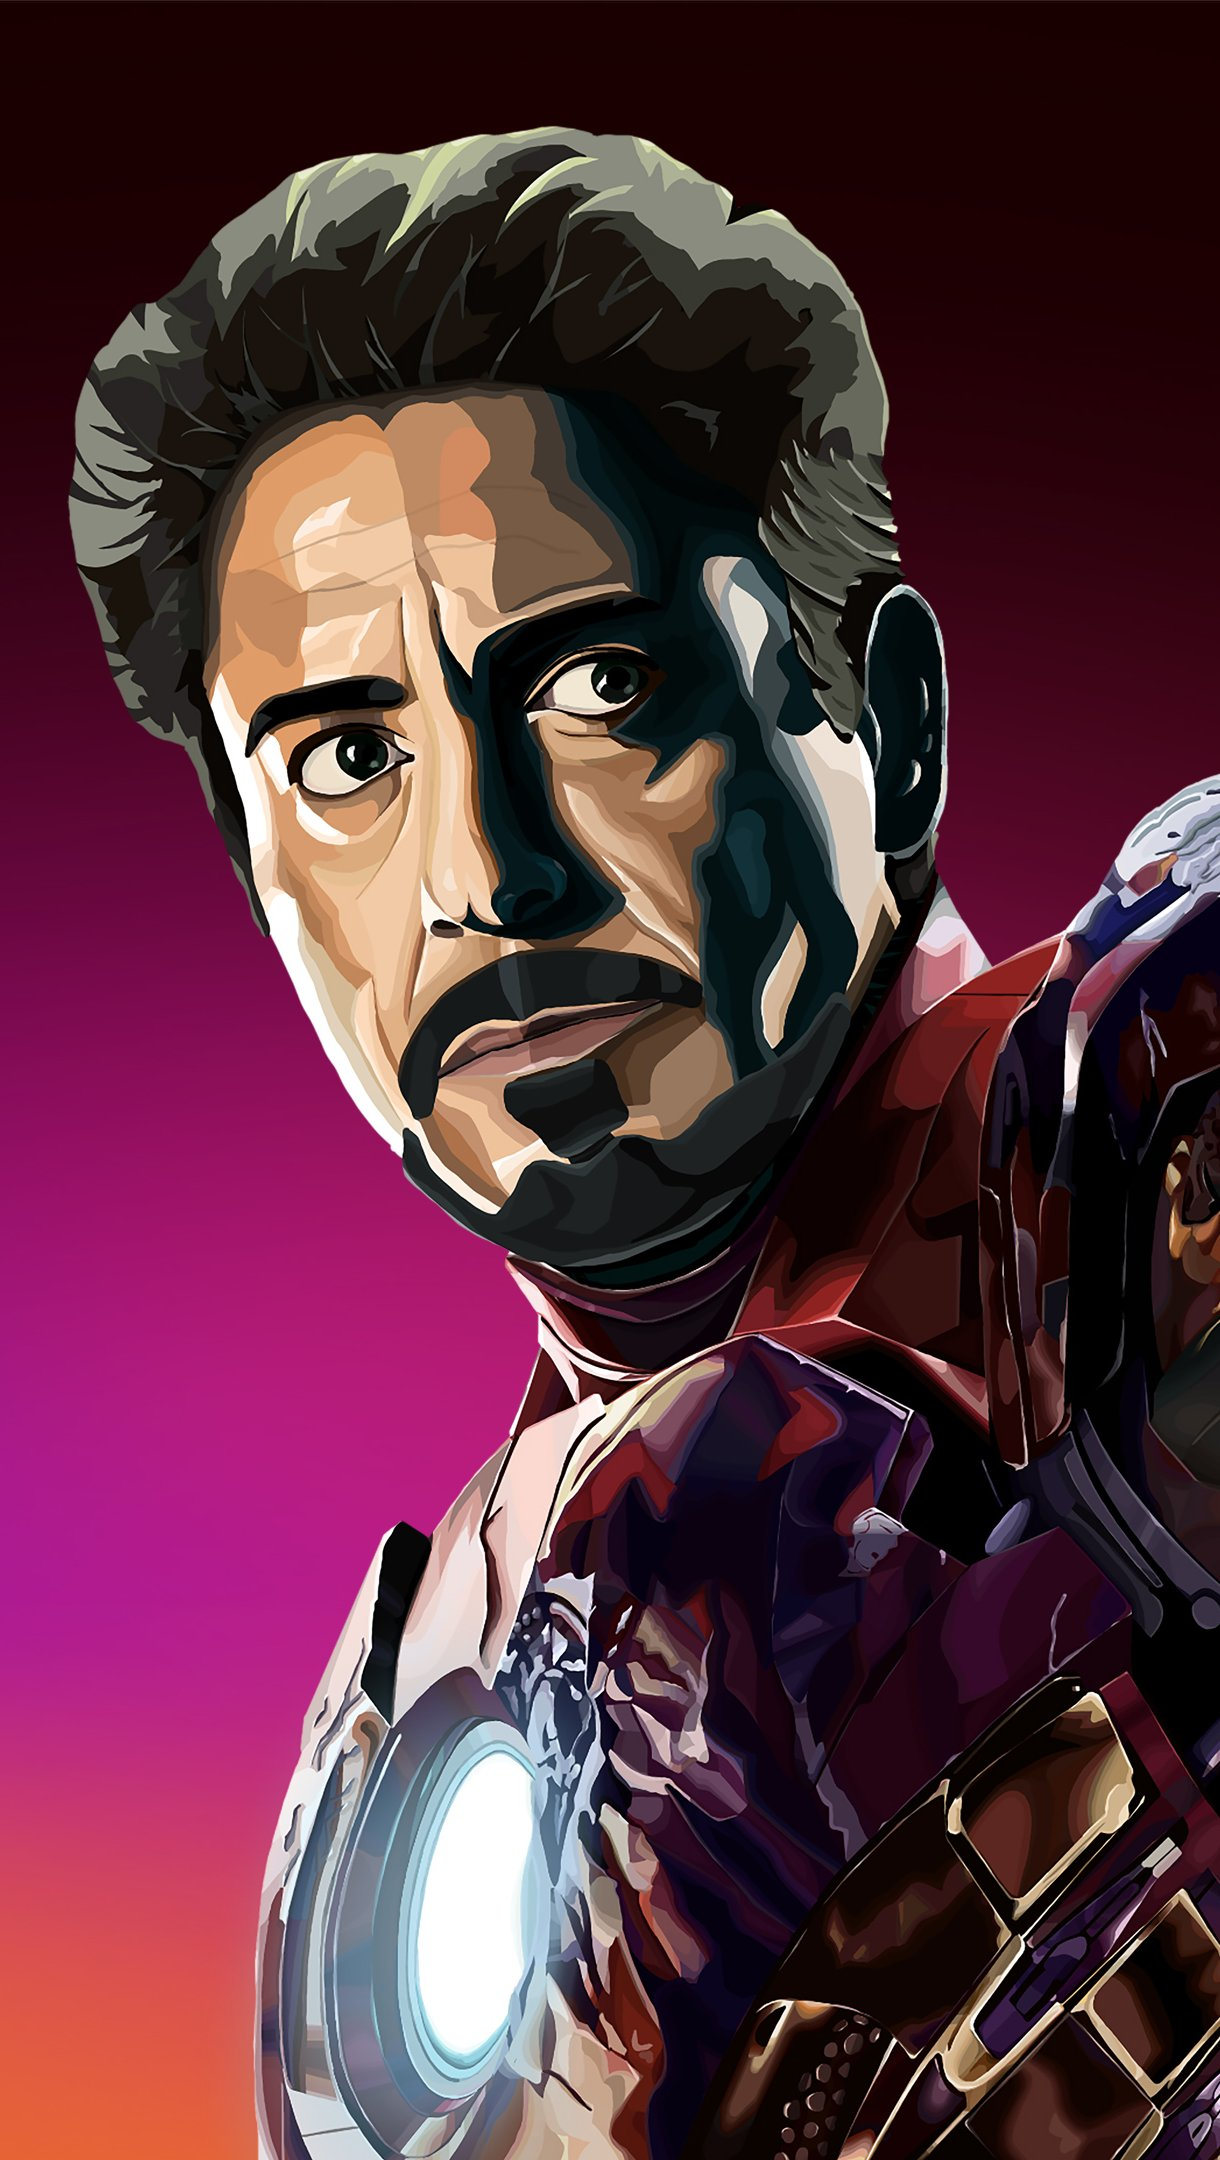 Fondos de pantalla Robert Downey Jr como Tony Stark Iron Man Fanart Vertical